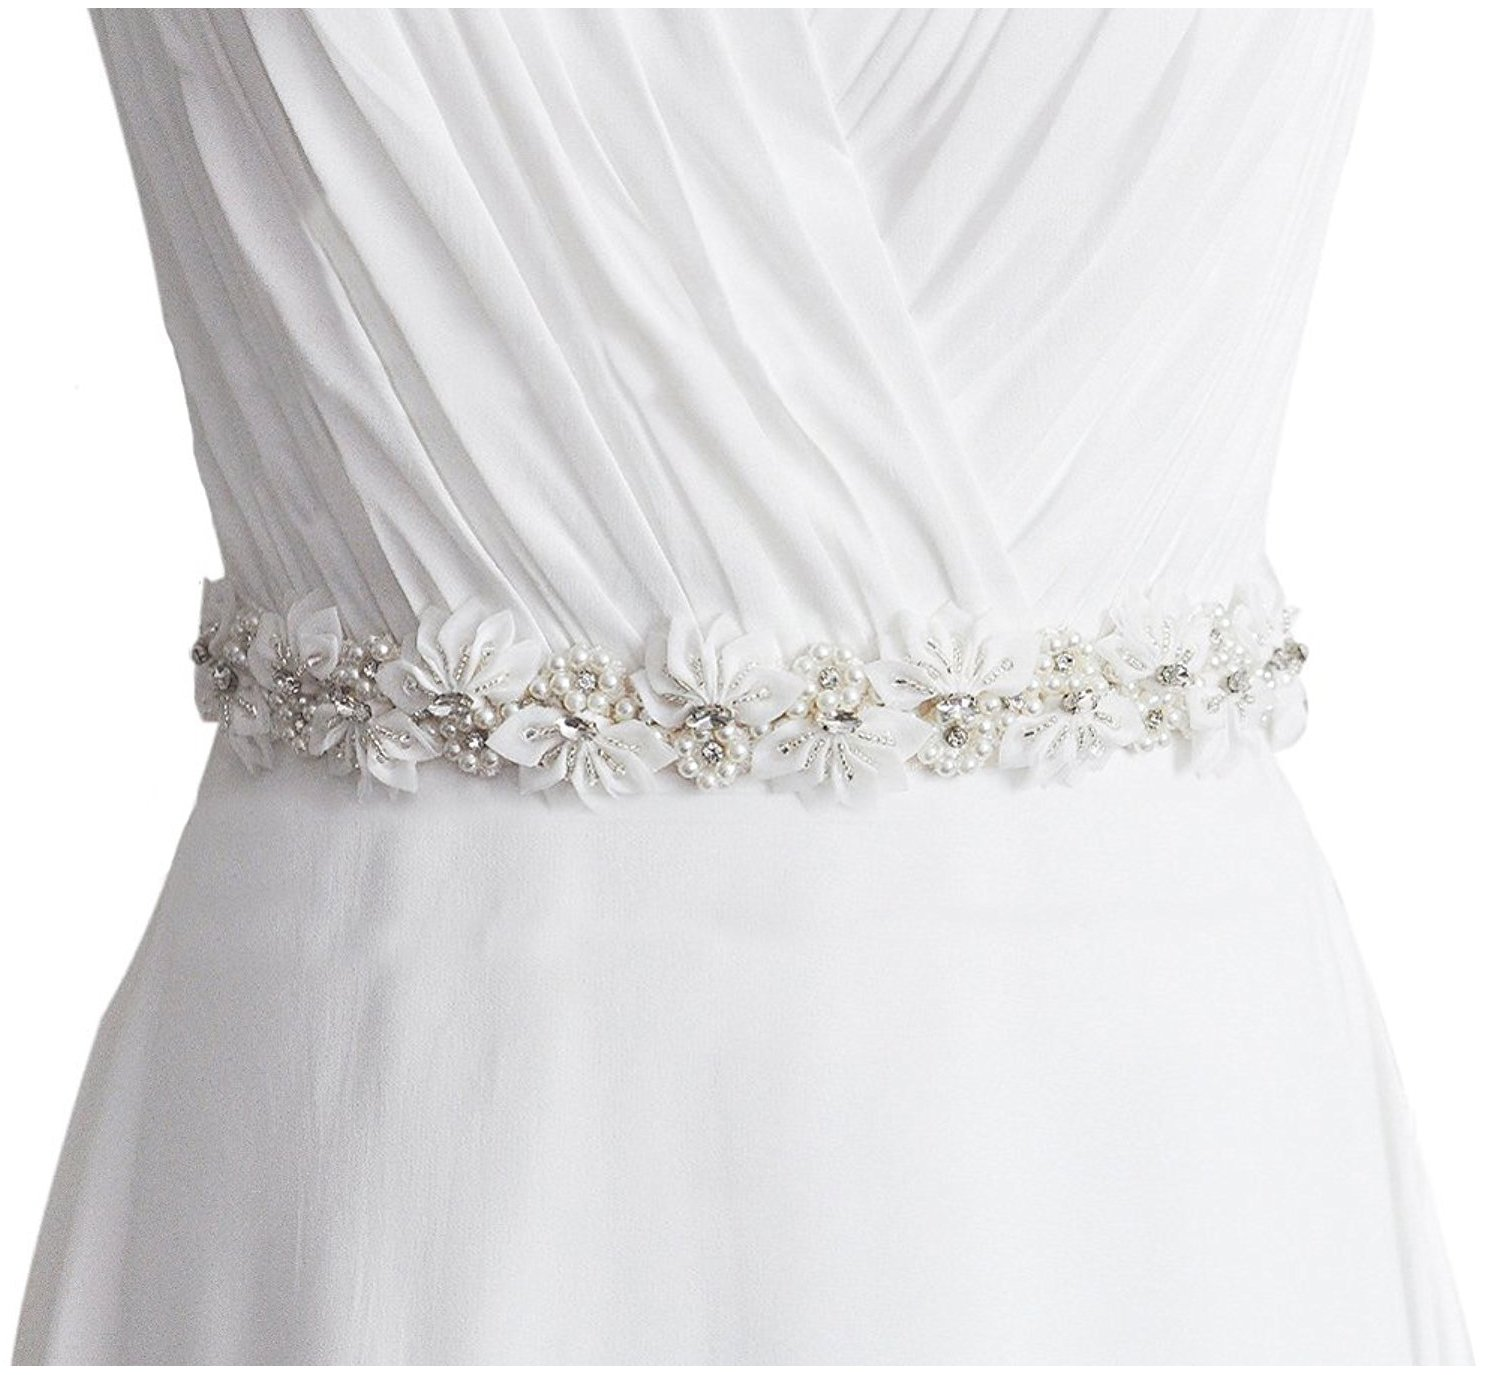 Lovful Womens Floral Beads & Rhinestone Flower Bridal Wedding Party Dress Belts,Ivory,One Size